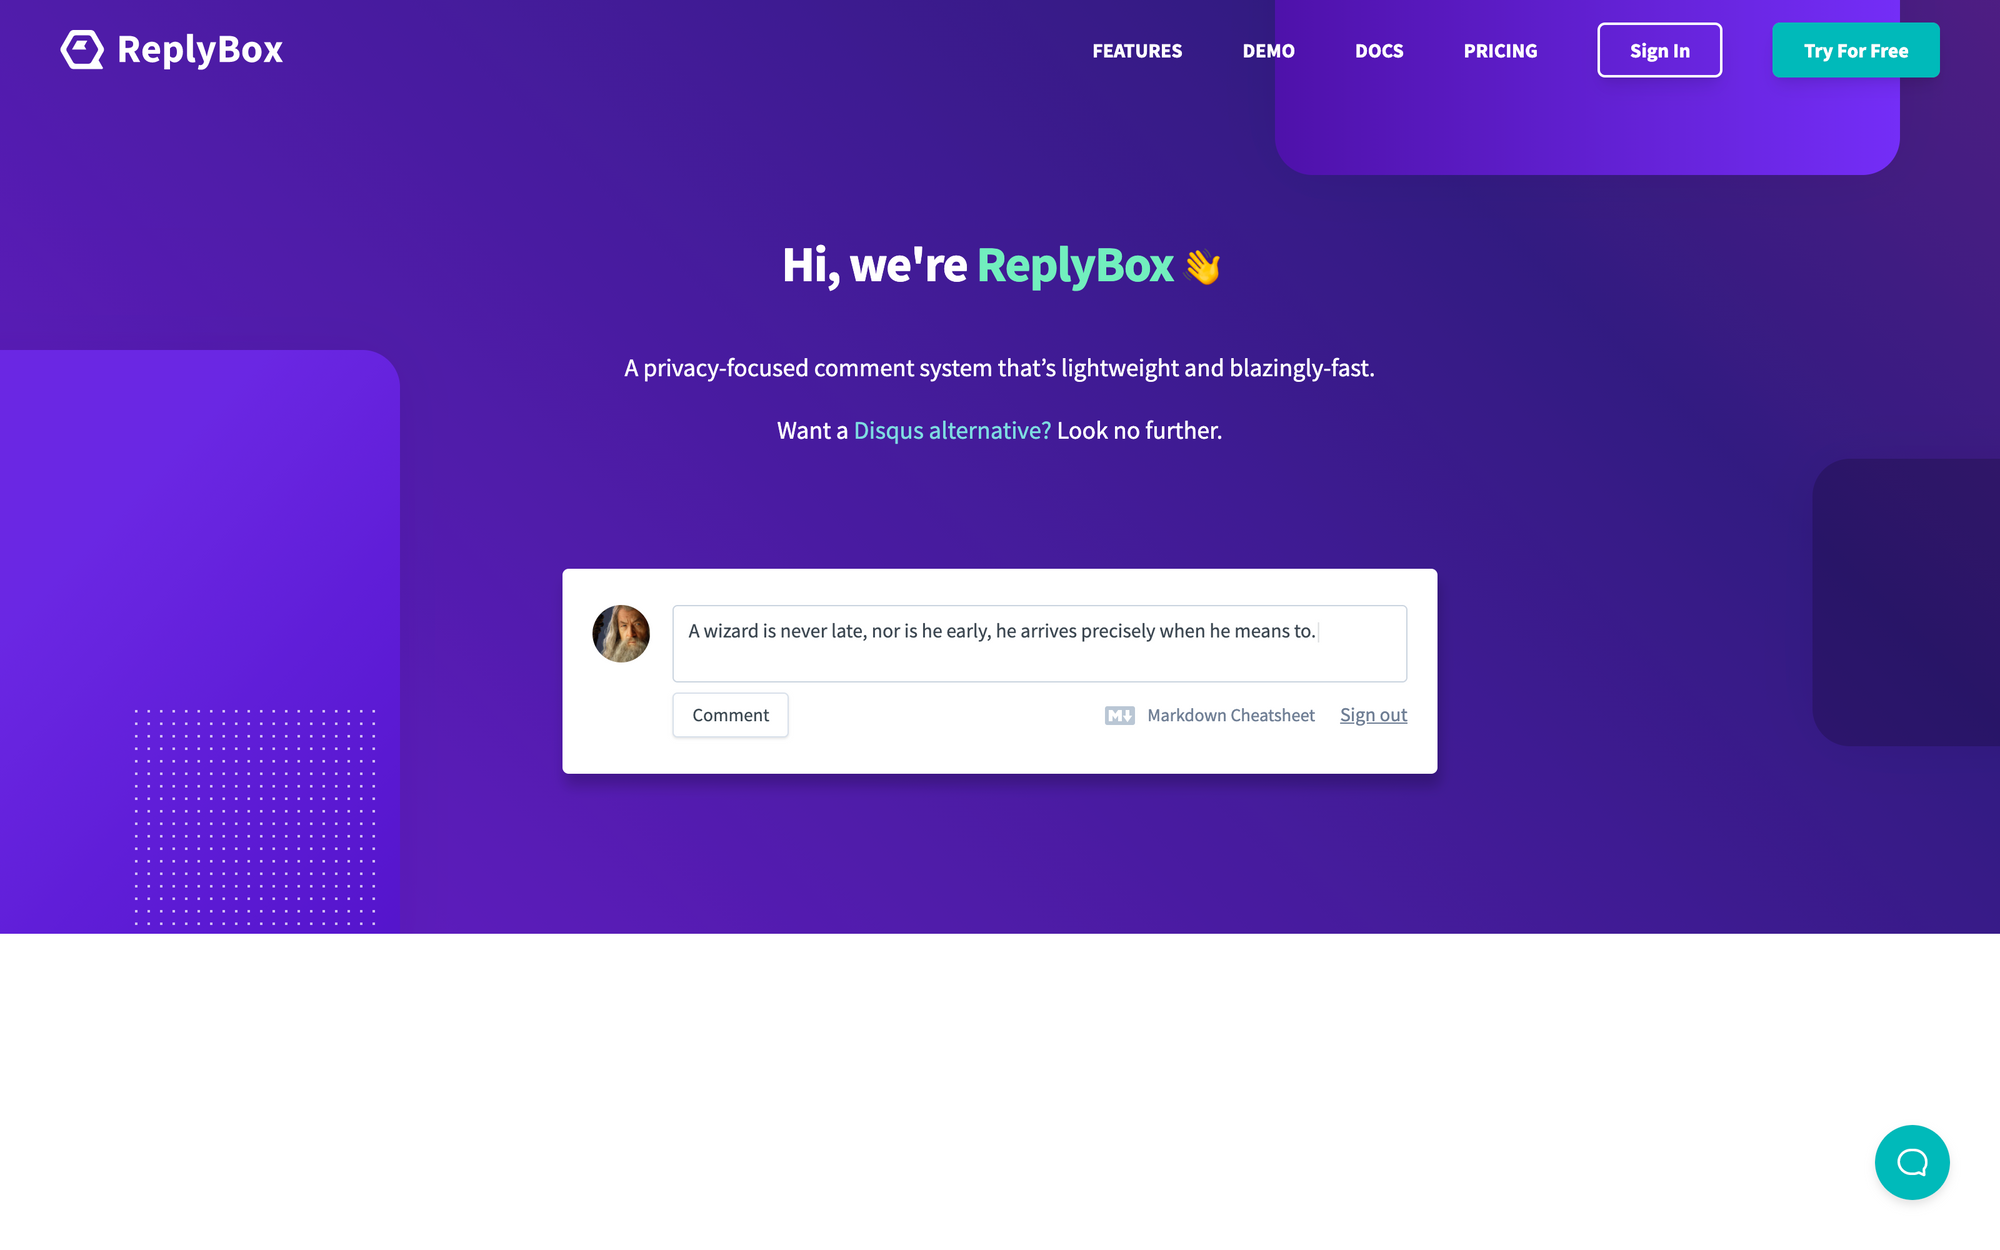 ReplyBox landing page